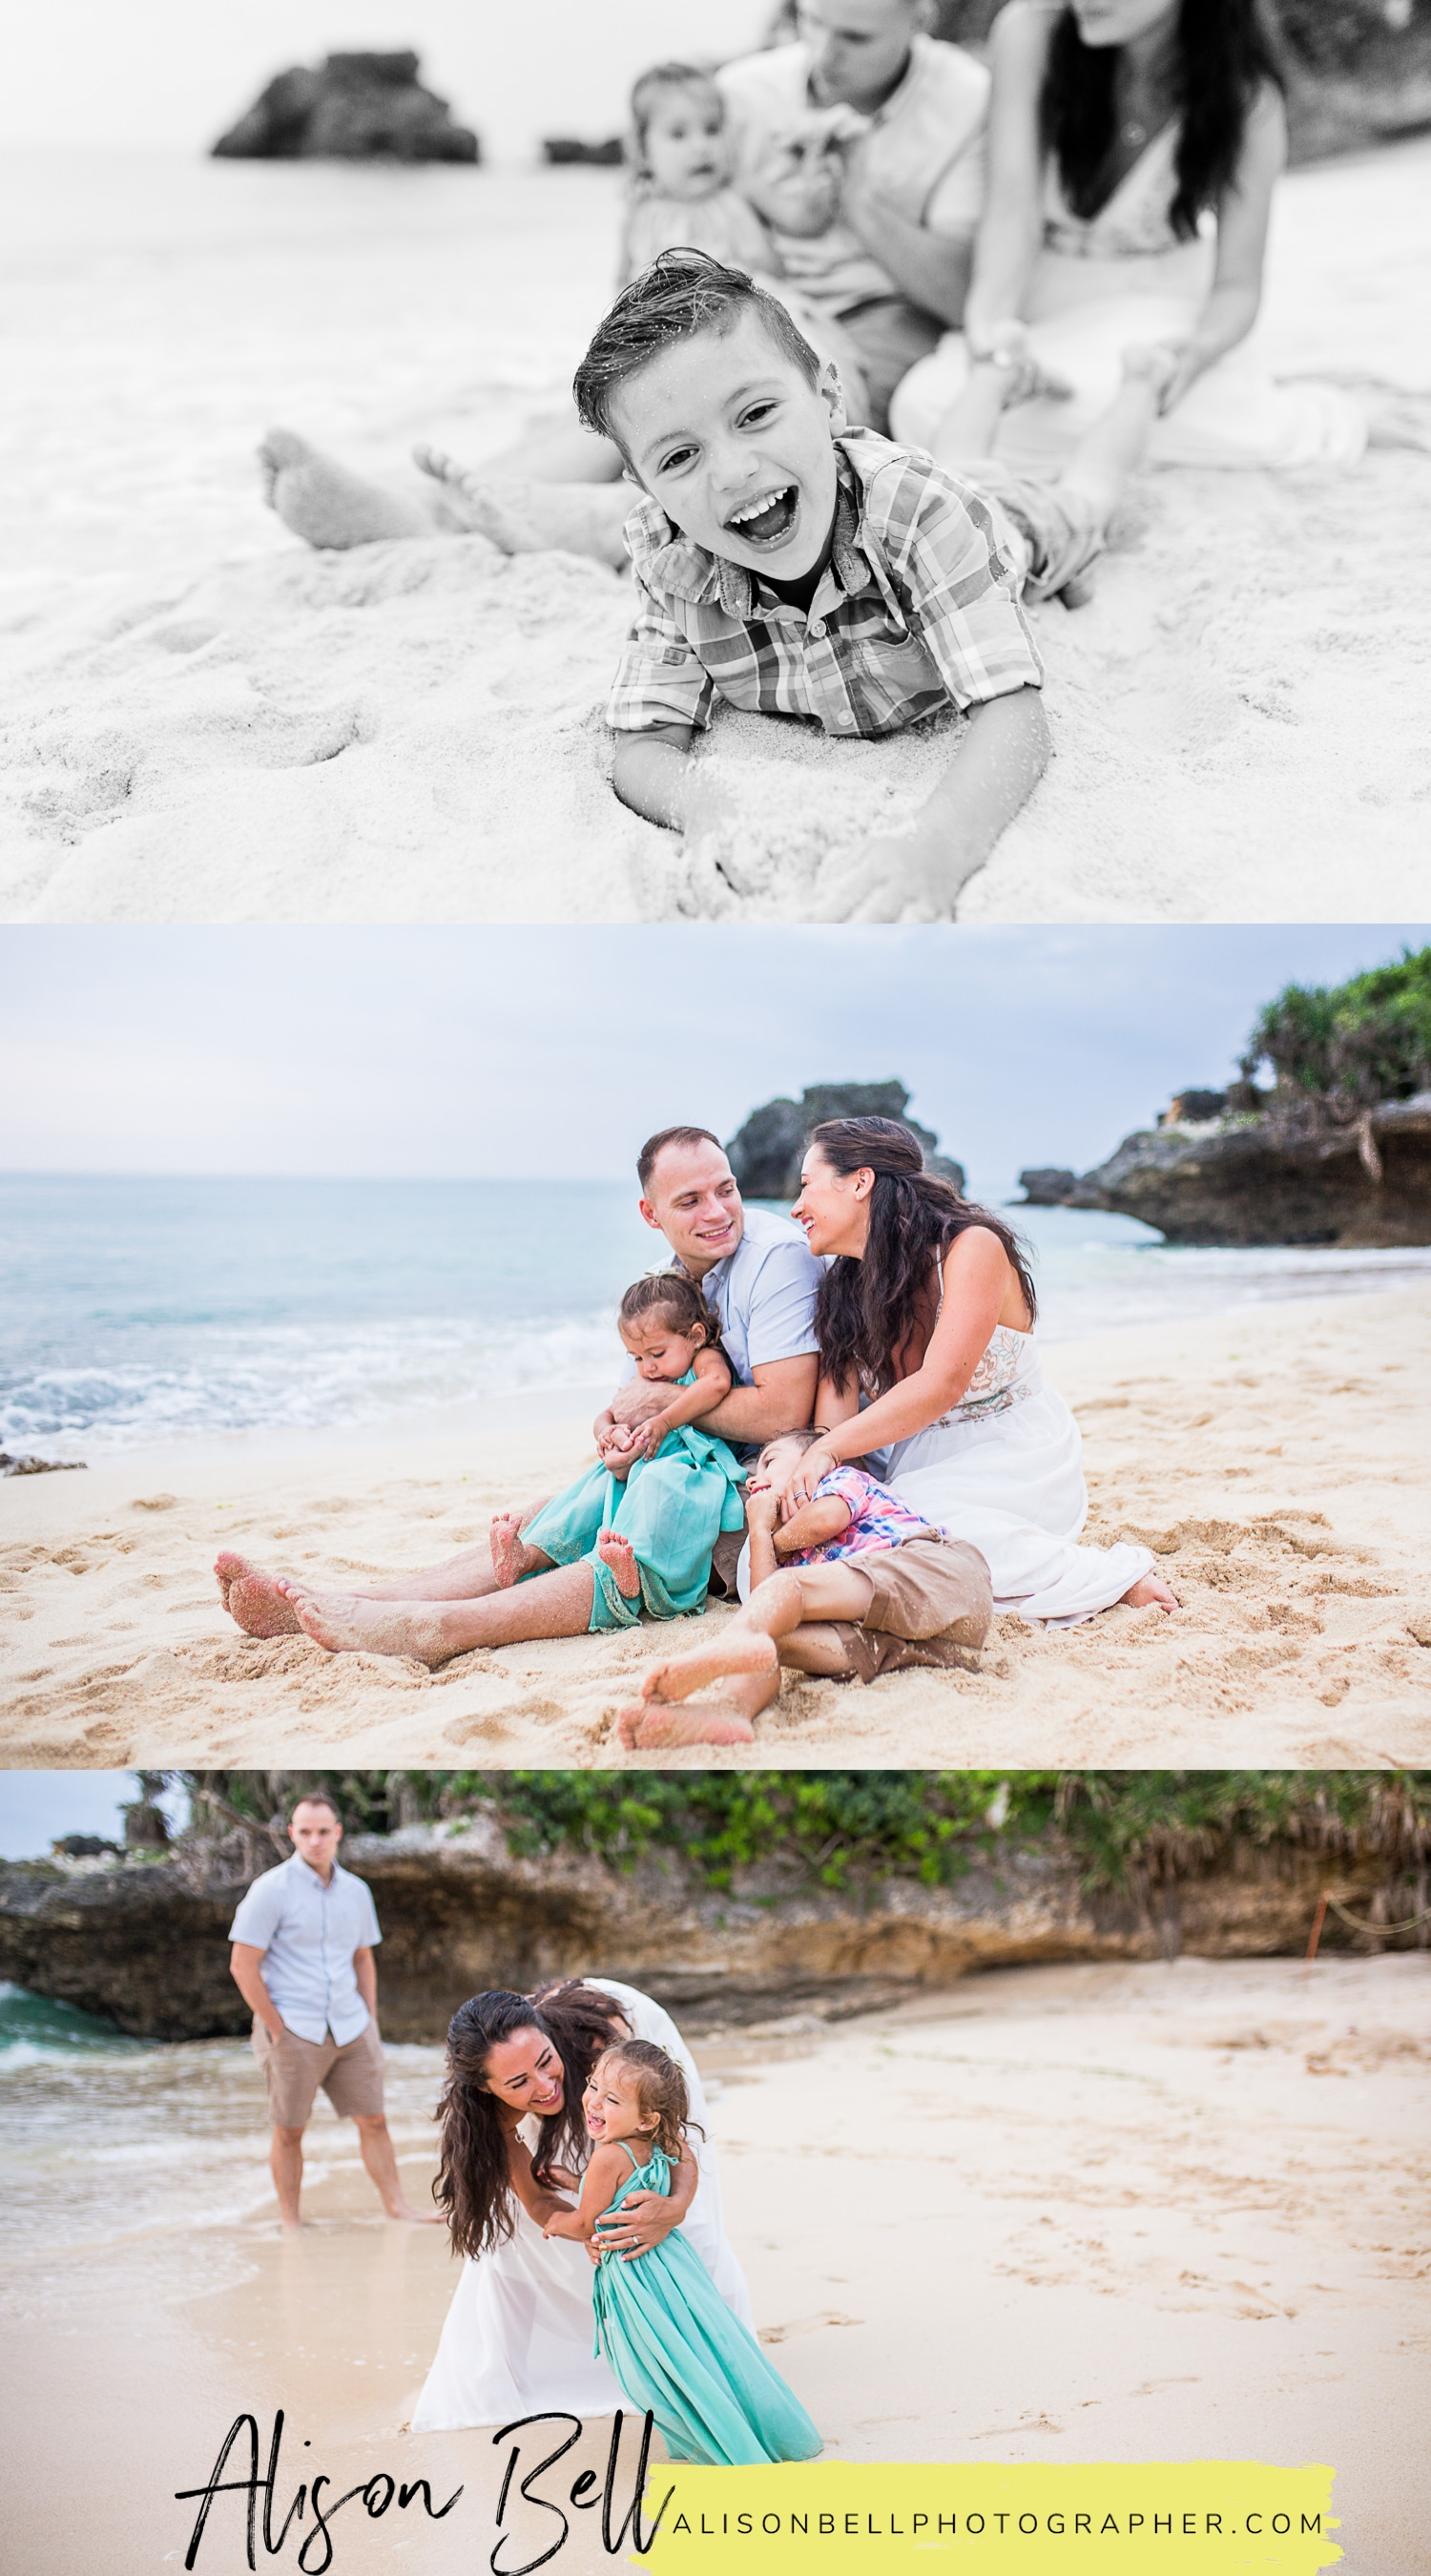 Family of 4, toddler and preschooler, photo session on the beach in Okinawa Japan by Alison Bell Photographer.